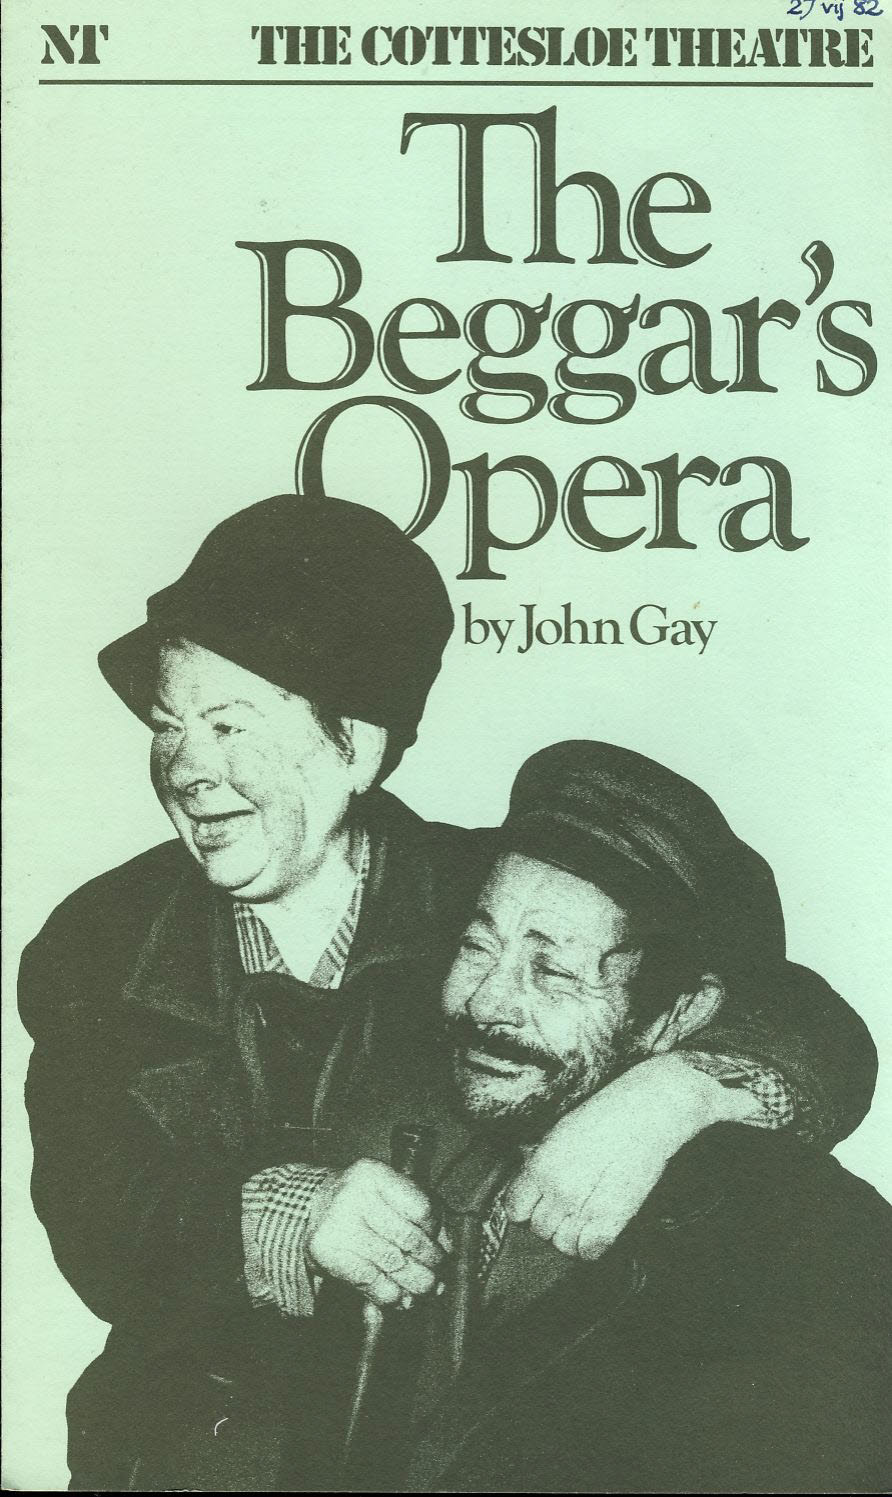 The Beggar's Opera by John Gay WILLIAM ARMSTRONG NT 1982 tri-fold Theatre Programme refb1256 Measures approx 15cm x 26cm. Date written on cover.